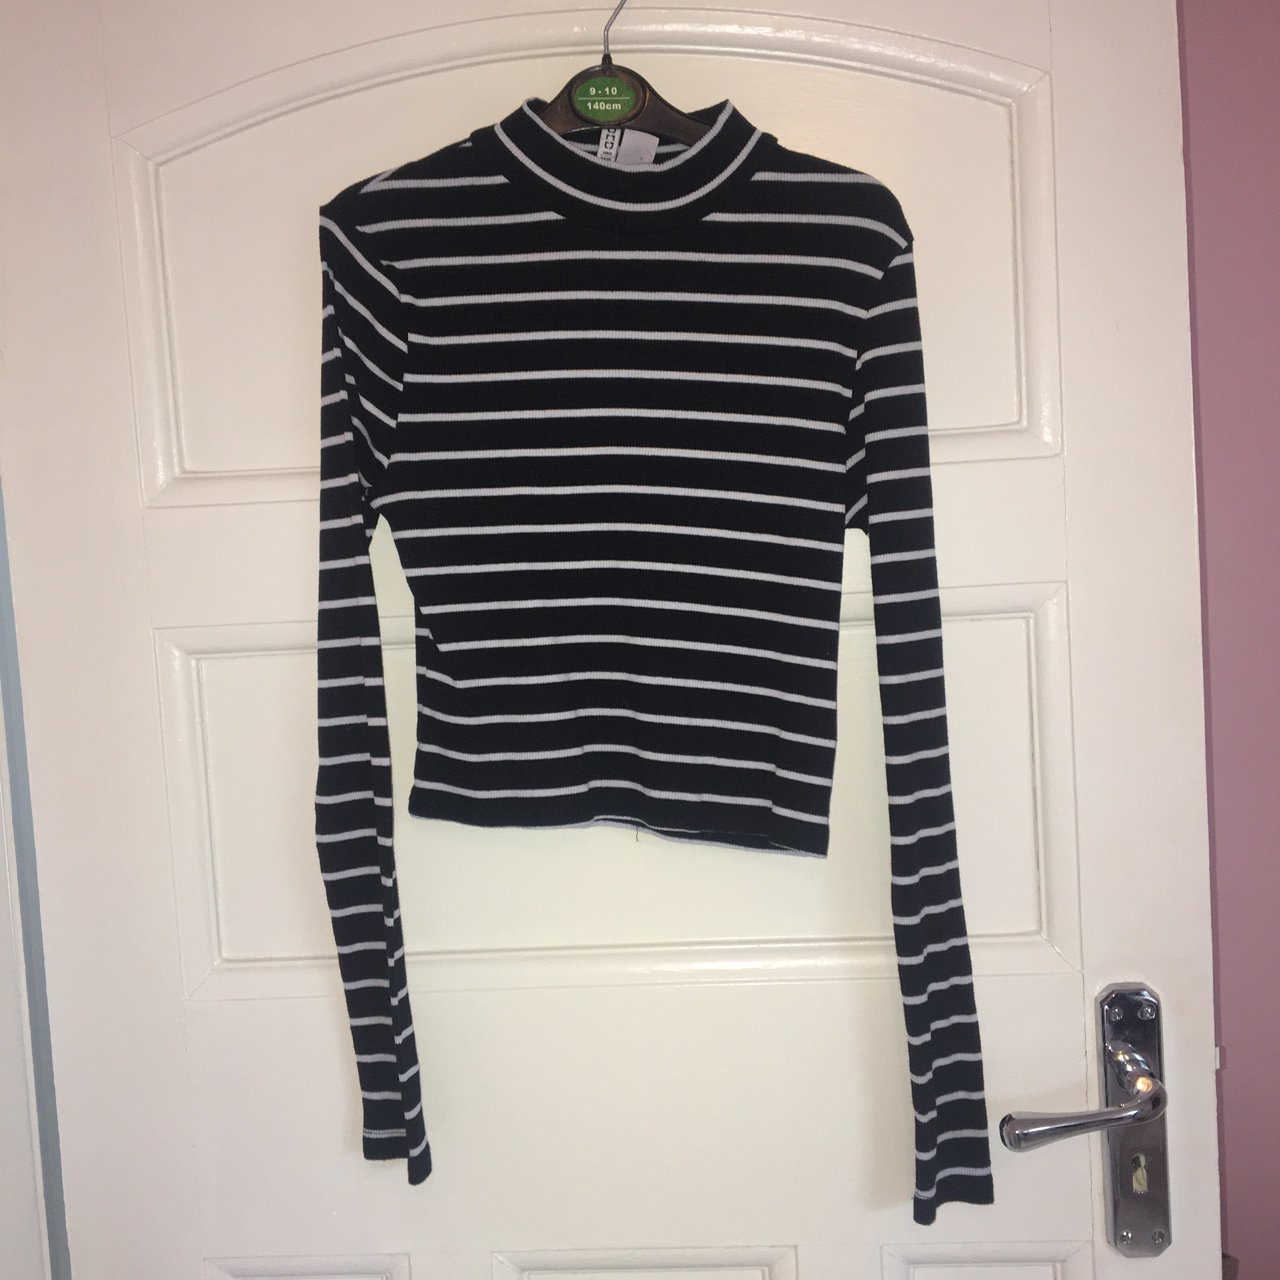 57950c8eb8 H m black and white stripe top💙 worn twice brought for - Depop